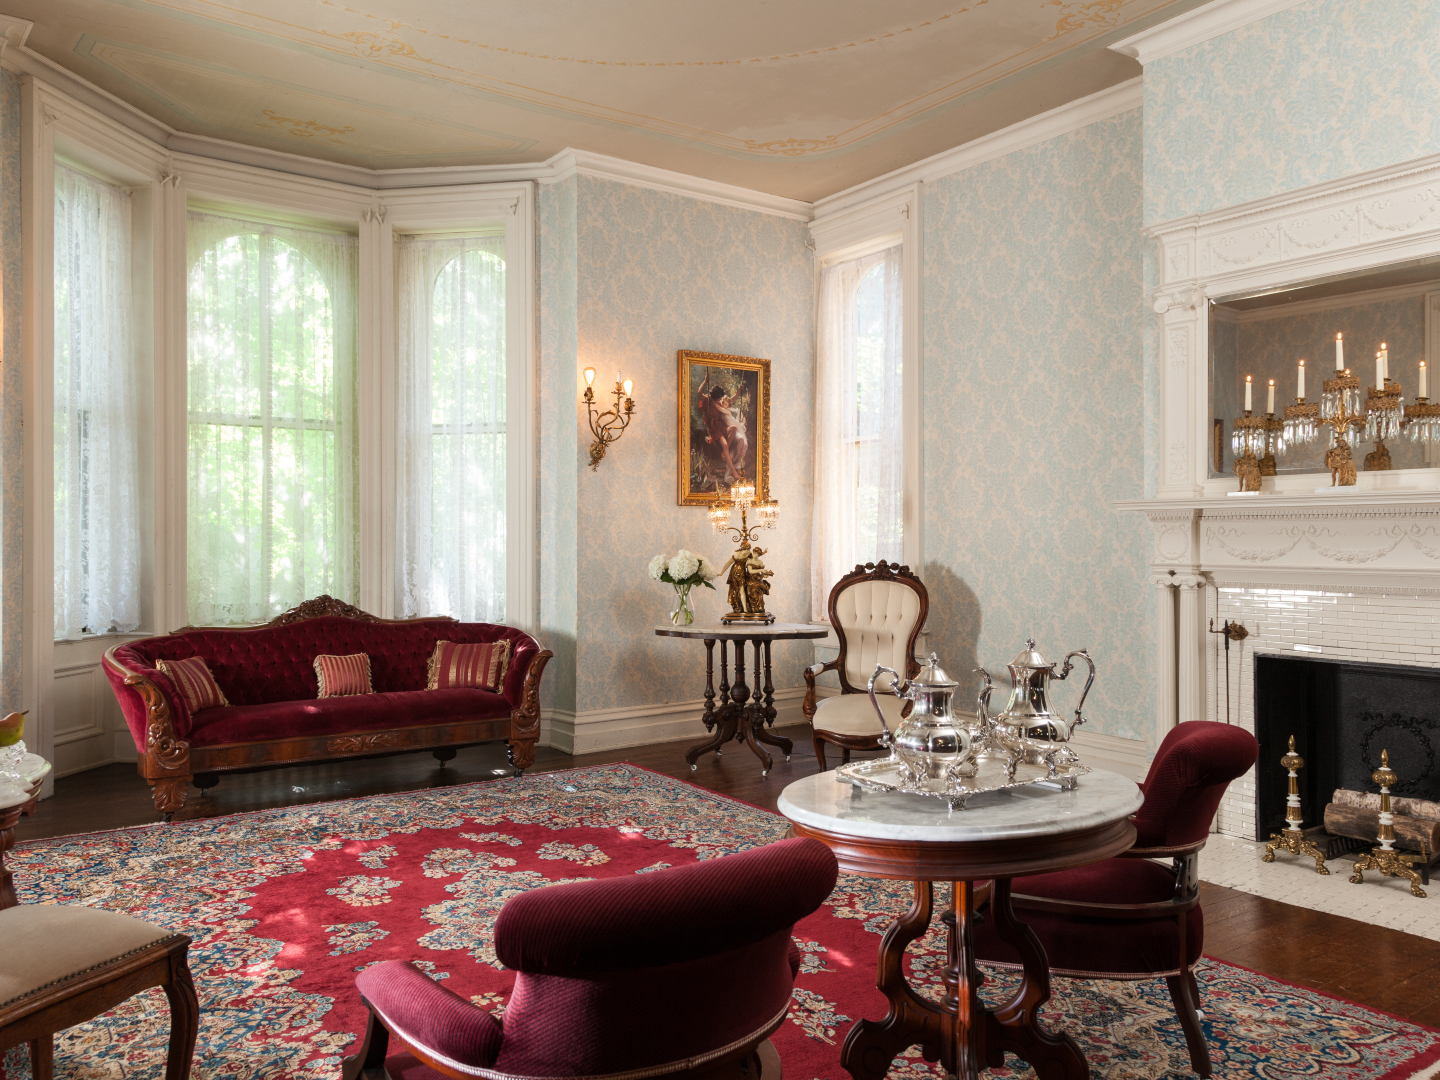 A living room filled with furniture and a fire place at Vrooman Mansion.